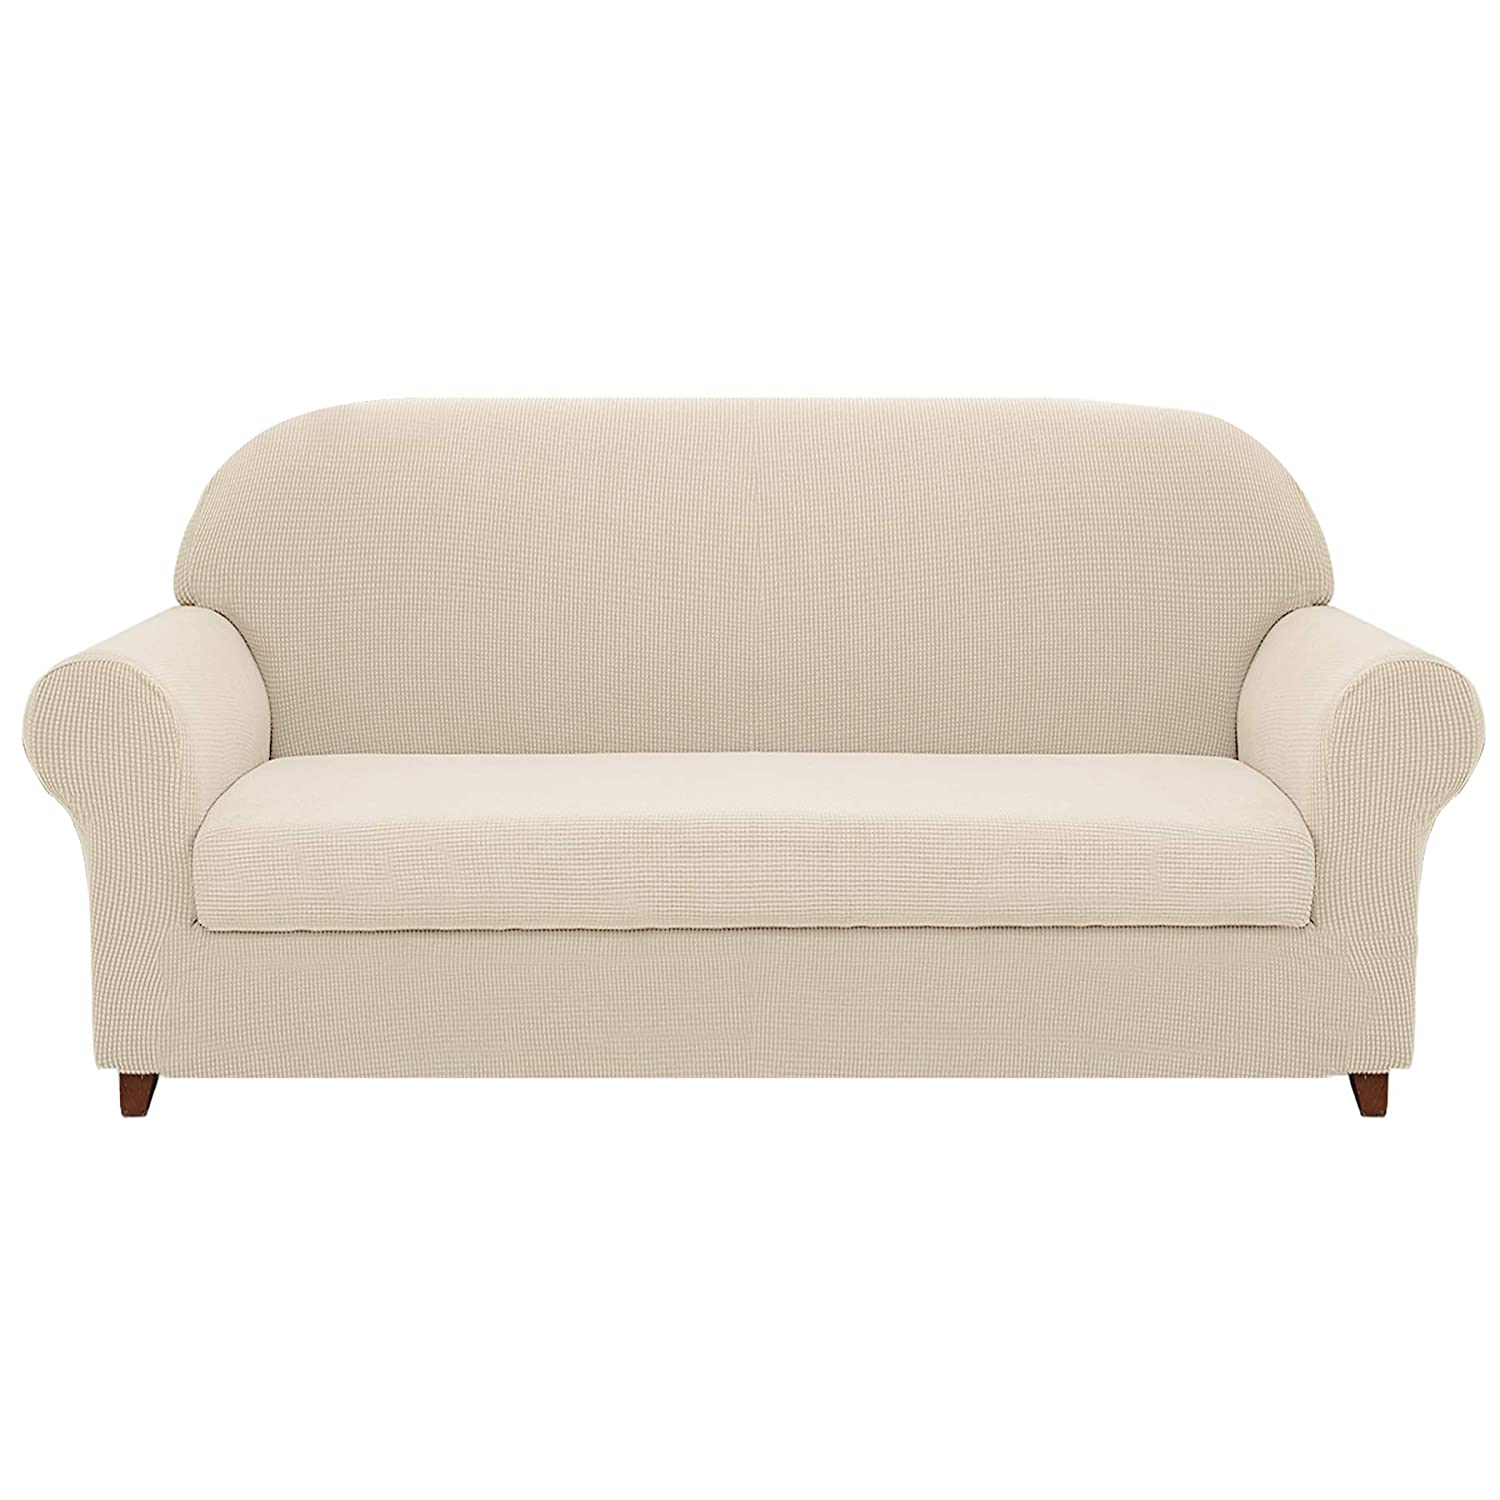 Amazon.com: Hokway 2-Piece Stretch Sofa Slipcover Spandex Couch ...